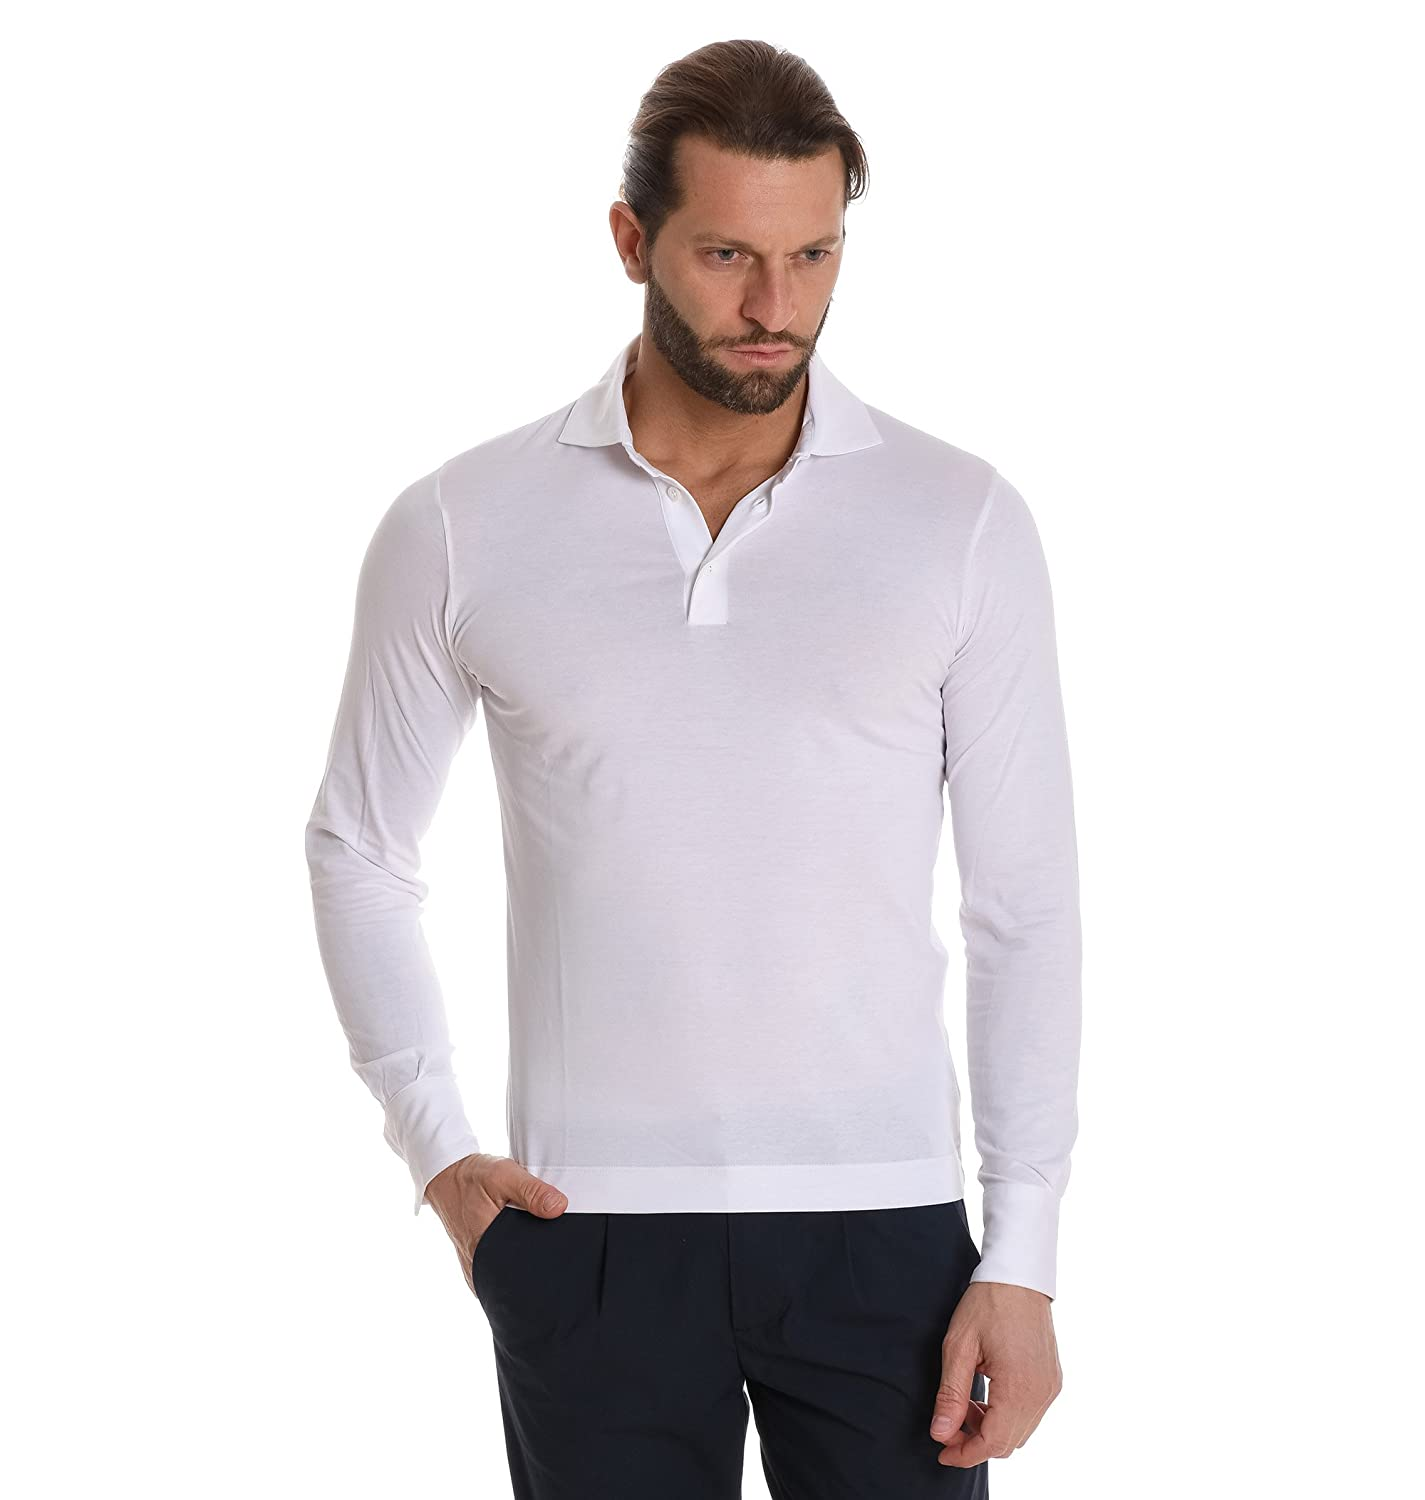 save off 4da07 1c068 CRUCIANI Men's Cujosp020001 White Cotton Polo Shirt at ...